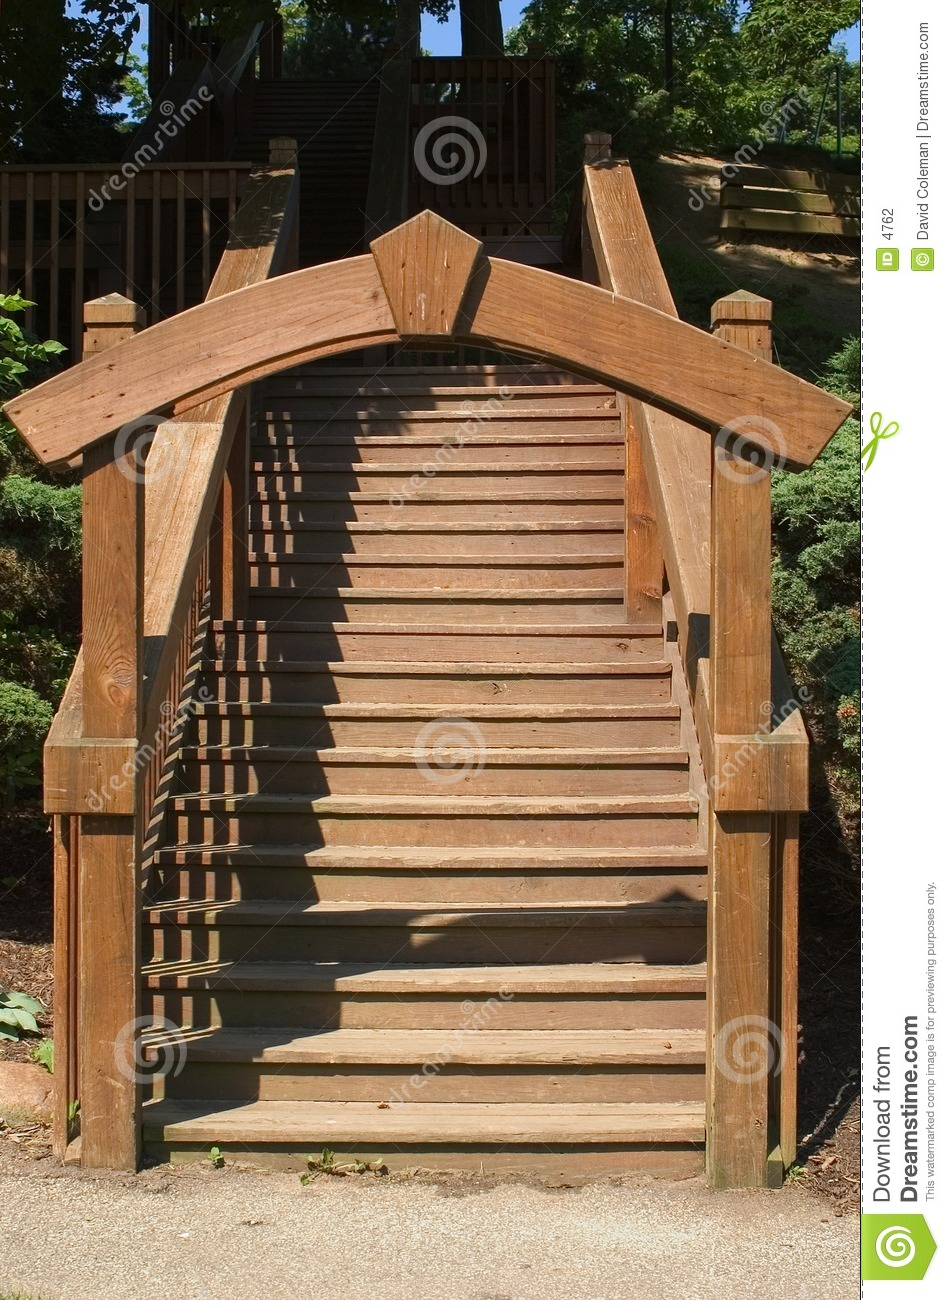 Wooden Archway